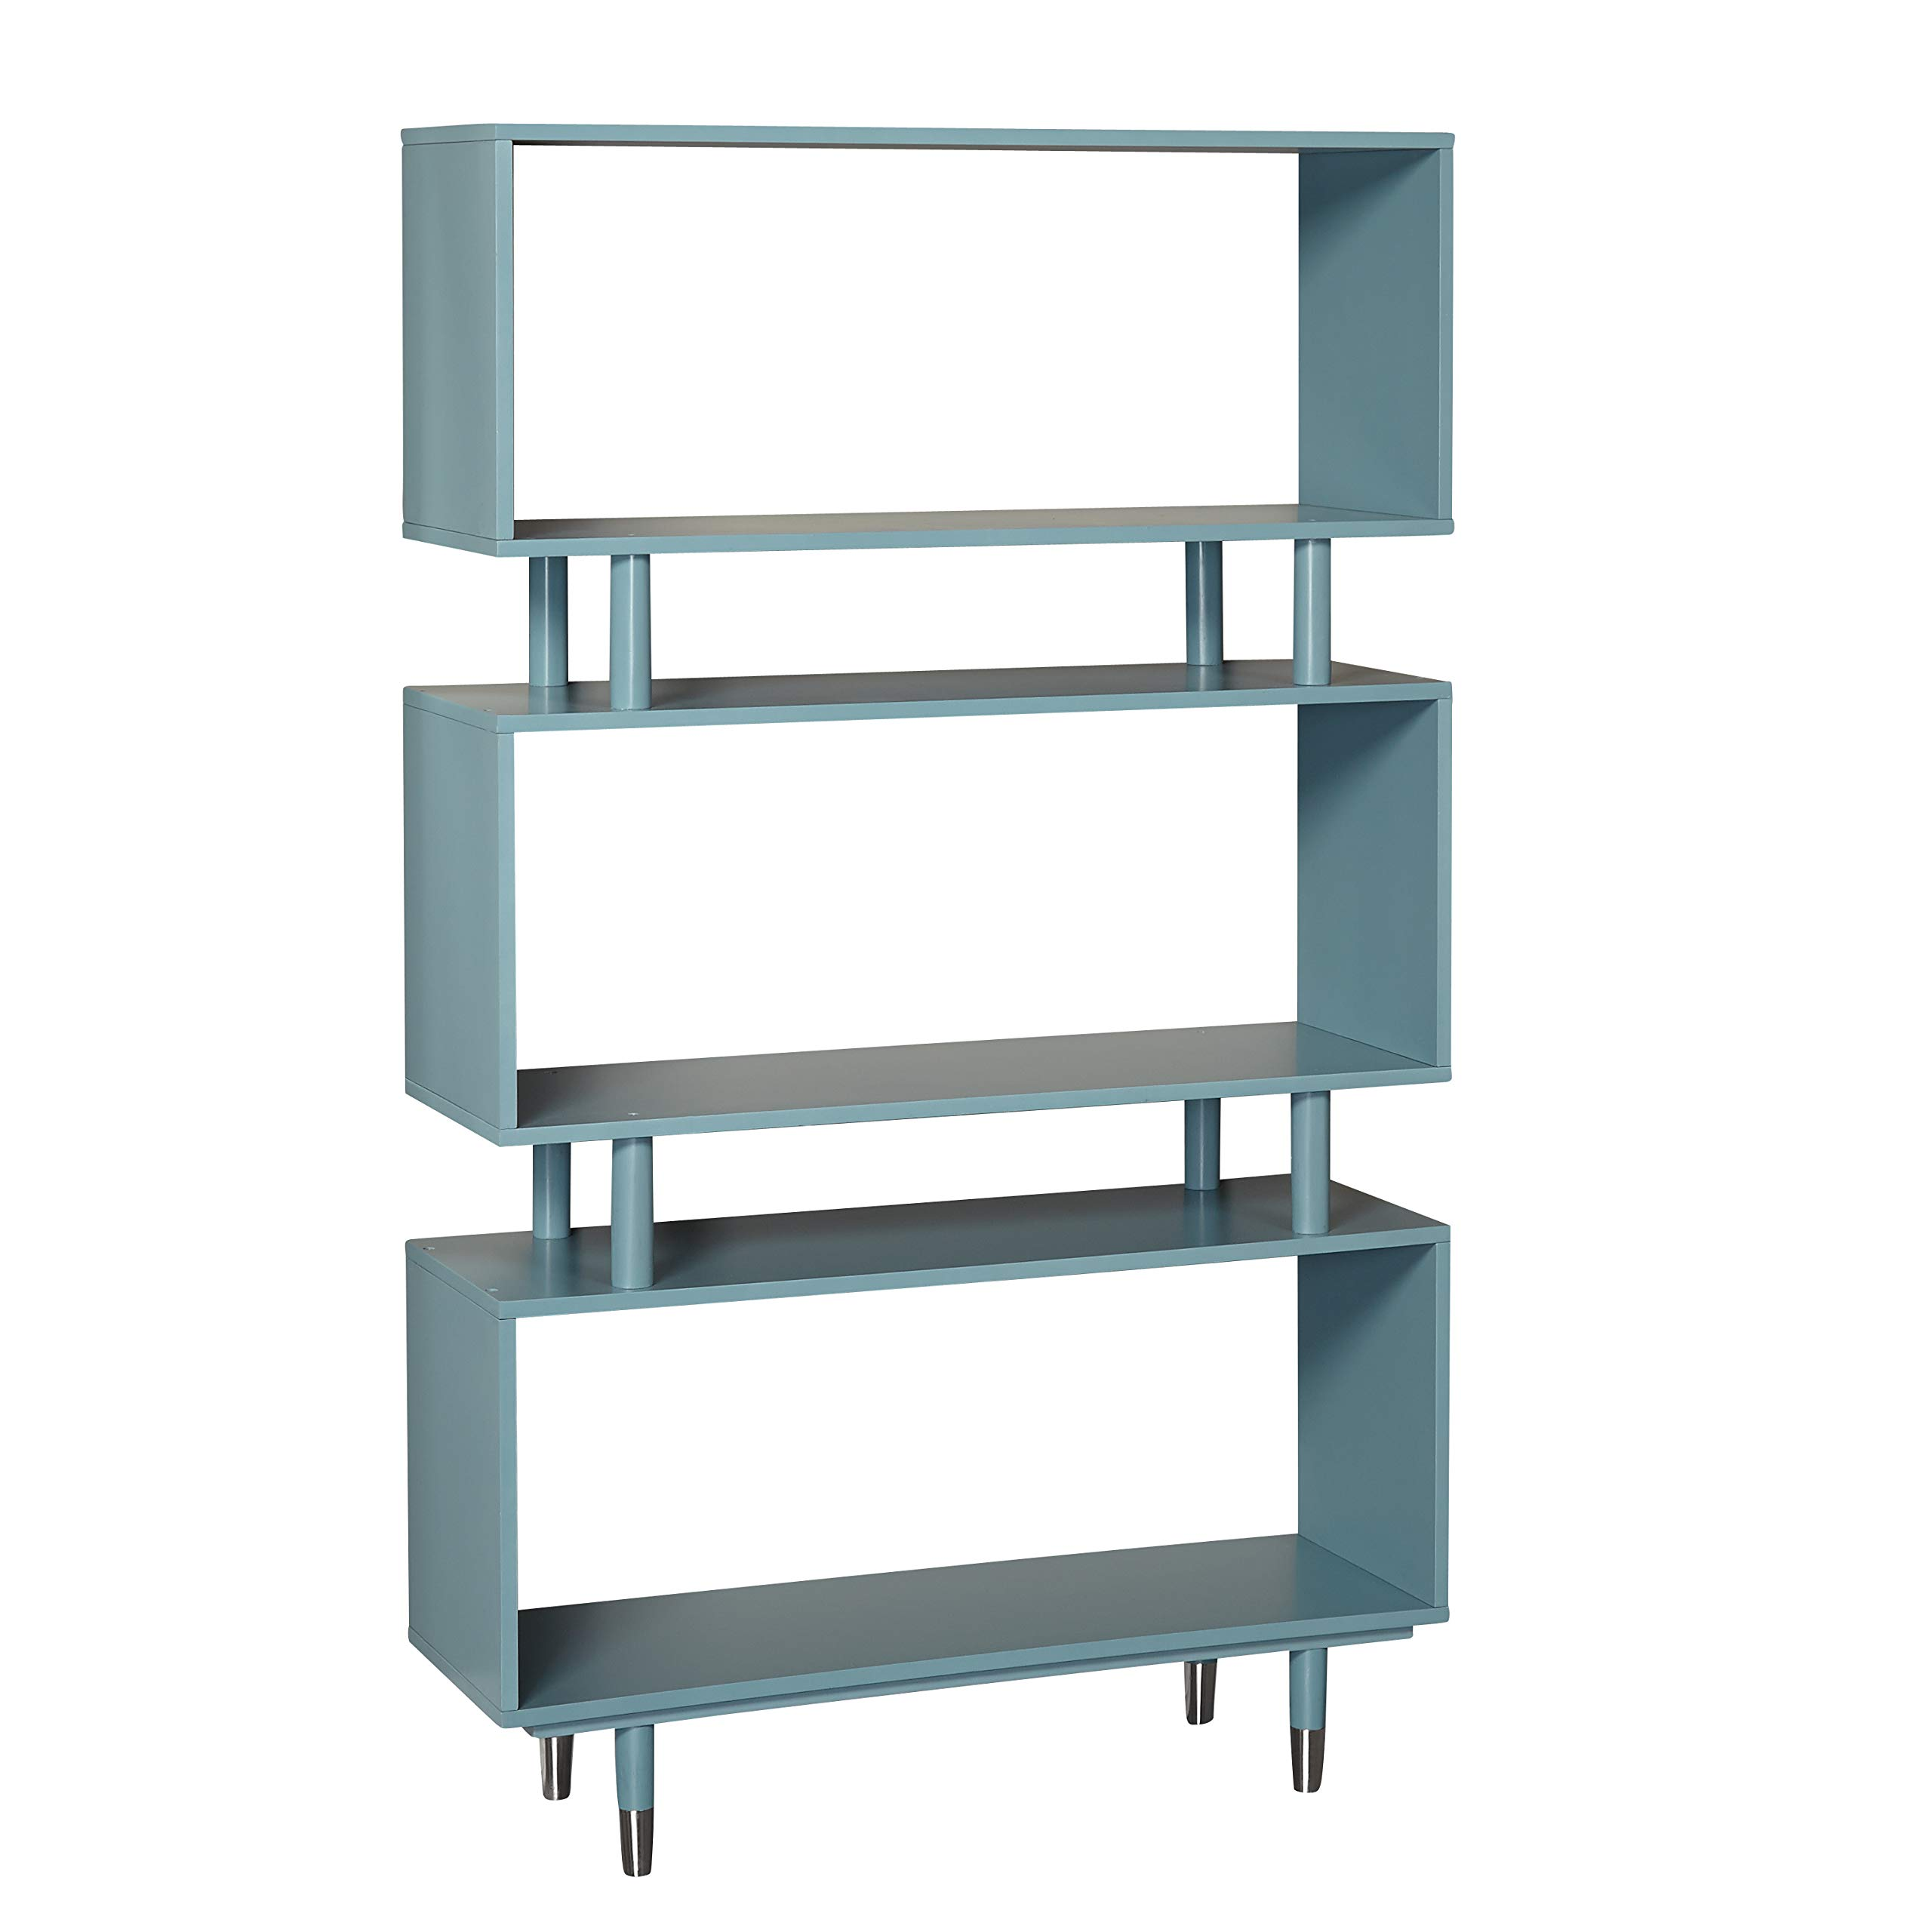 Target Marketing Systems 43000BLU Margo Mid-Century Modern Bookshelf, Antique Blue by Target Marketing Systems